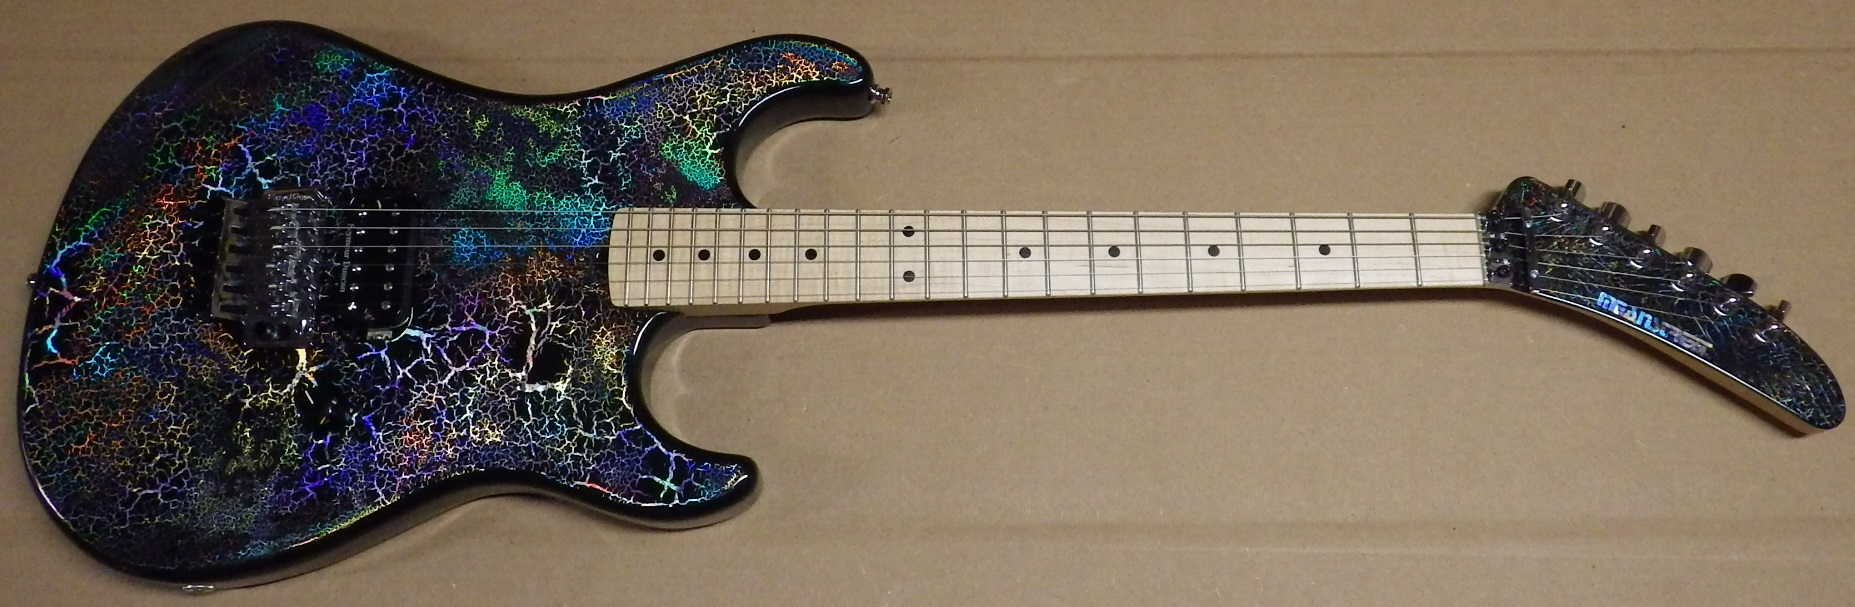 Mean Street Unchained Tour Model with wicked Holocrackle paint job and matching headstock, Poplar body, light flame 1 piece rock maple neck, R2 nut, 22 medium jumbo frets, Original Floyd Rose tremolo, Seymour Duncan TB14 Custom 5 pickup, Gotoh tuners, strap locks, CTS pot, Switchcraft jack...comes with Gator case. $1795 plus shipping SOLD